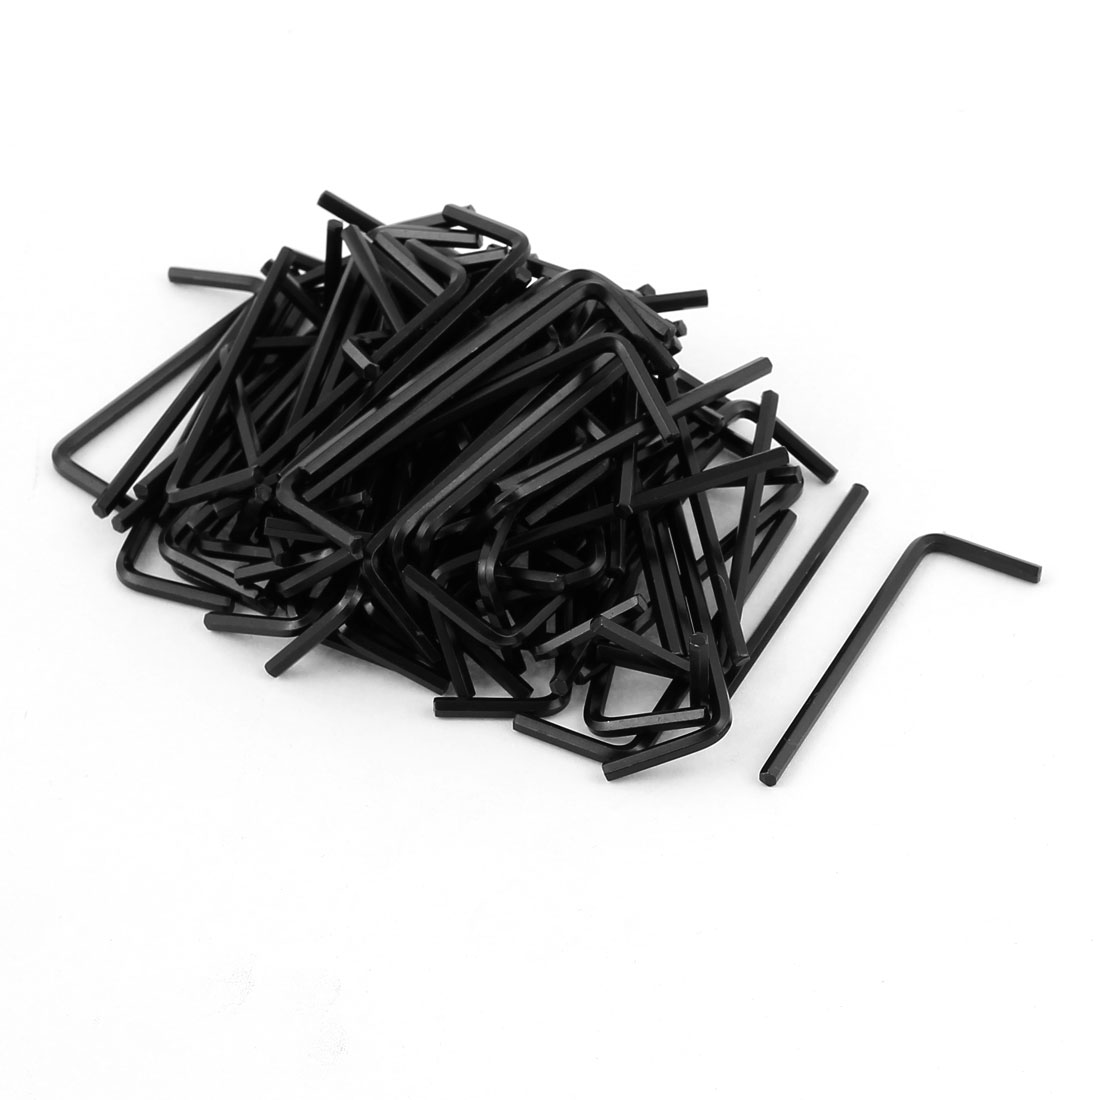 100 Pcs 2.5mm Steel L Shaped Metric Hexagon Key Hex Wrench Repair Tool Black